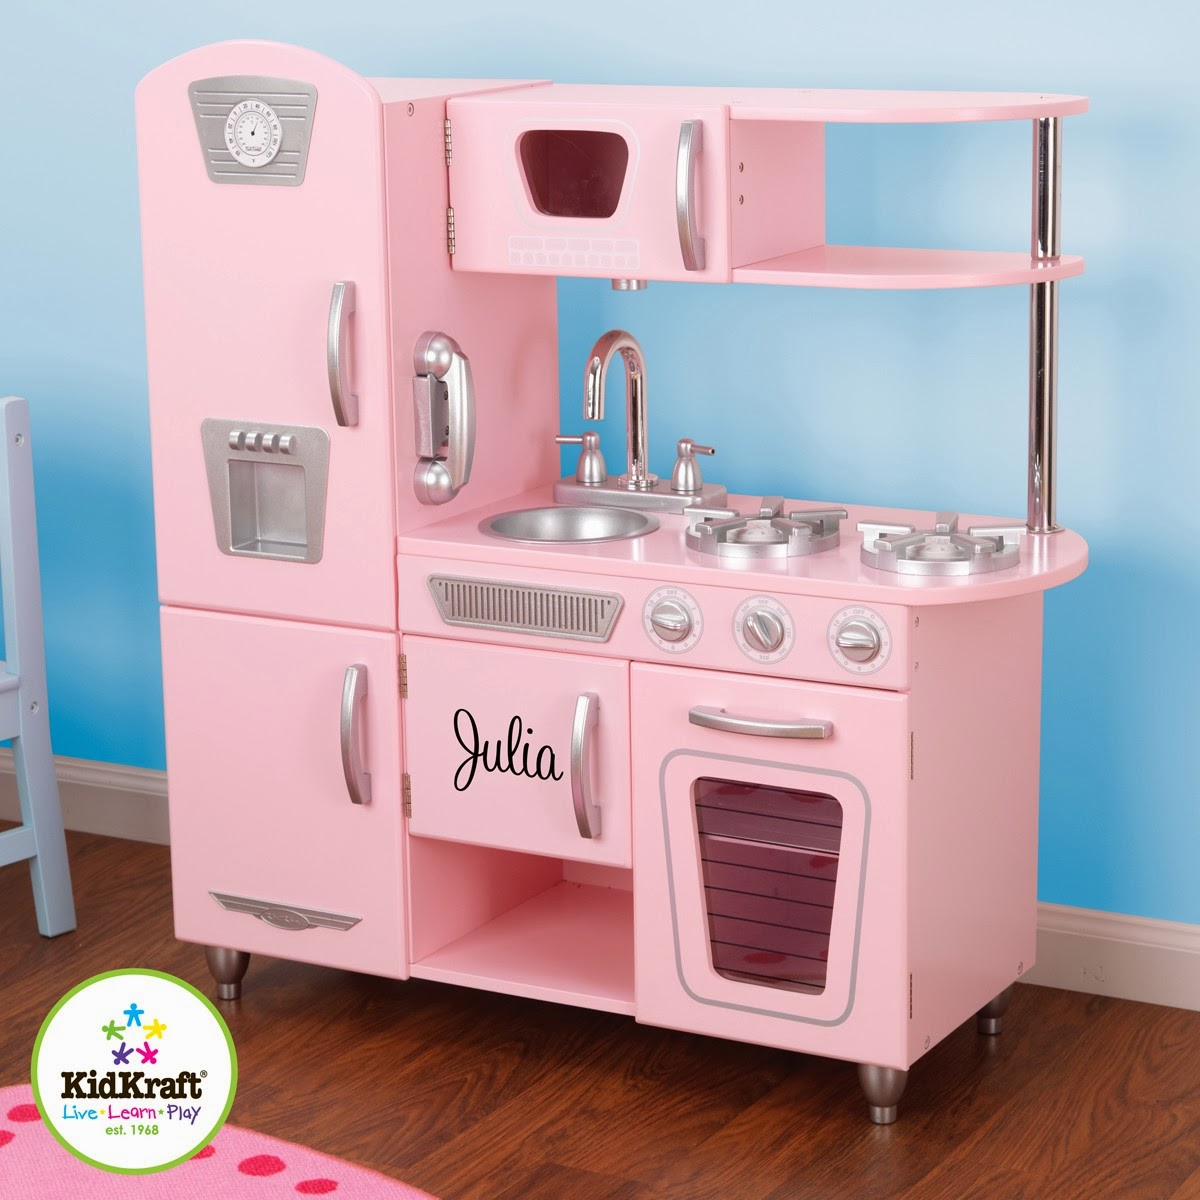 Kidkraft Wooden Kitchen Uk